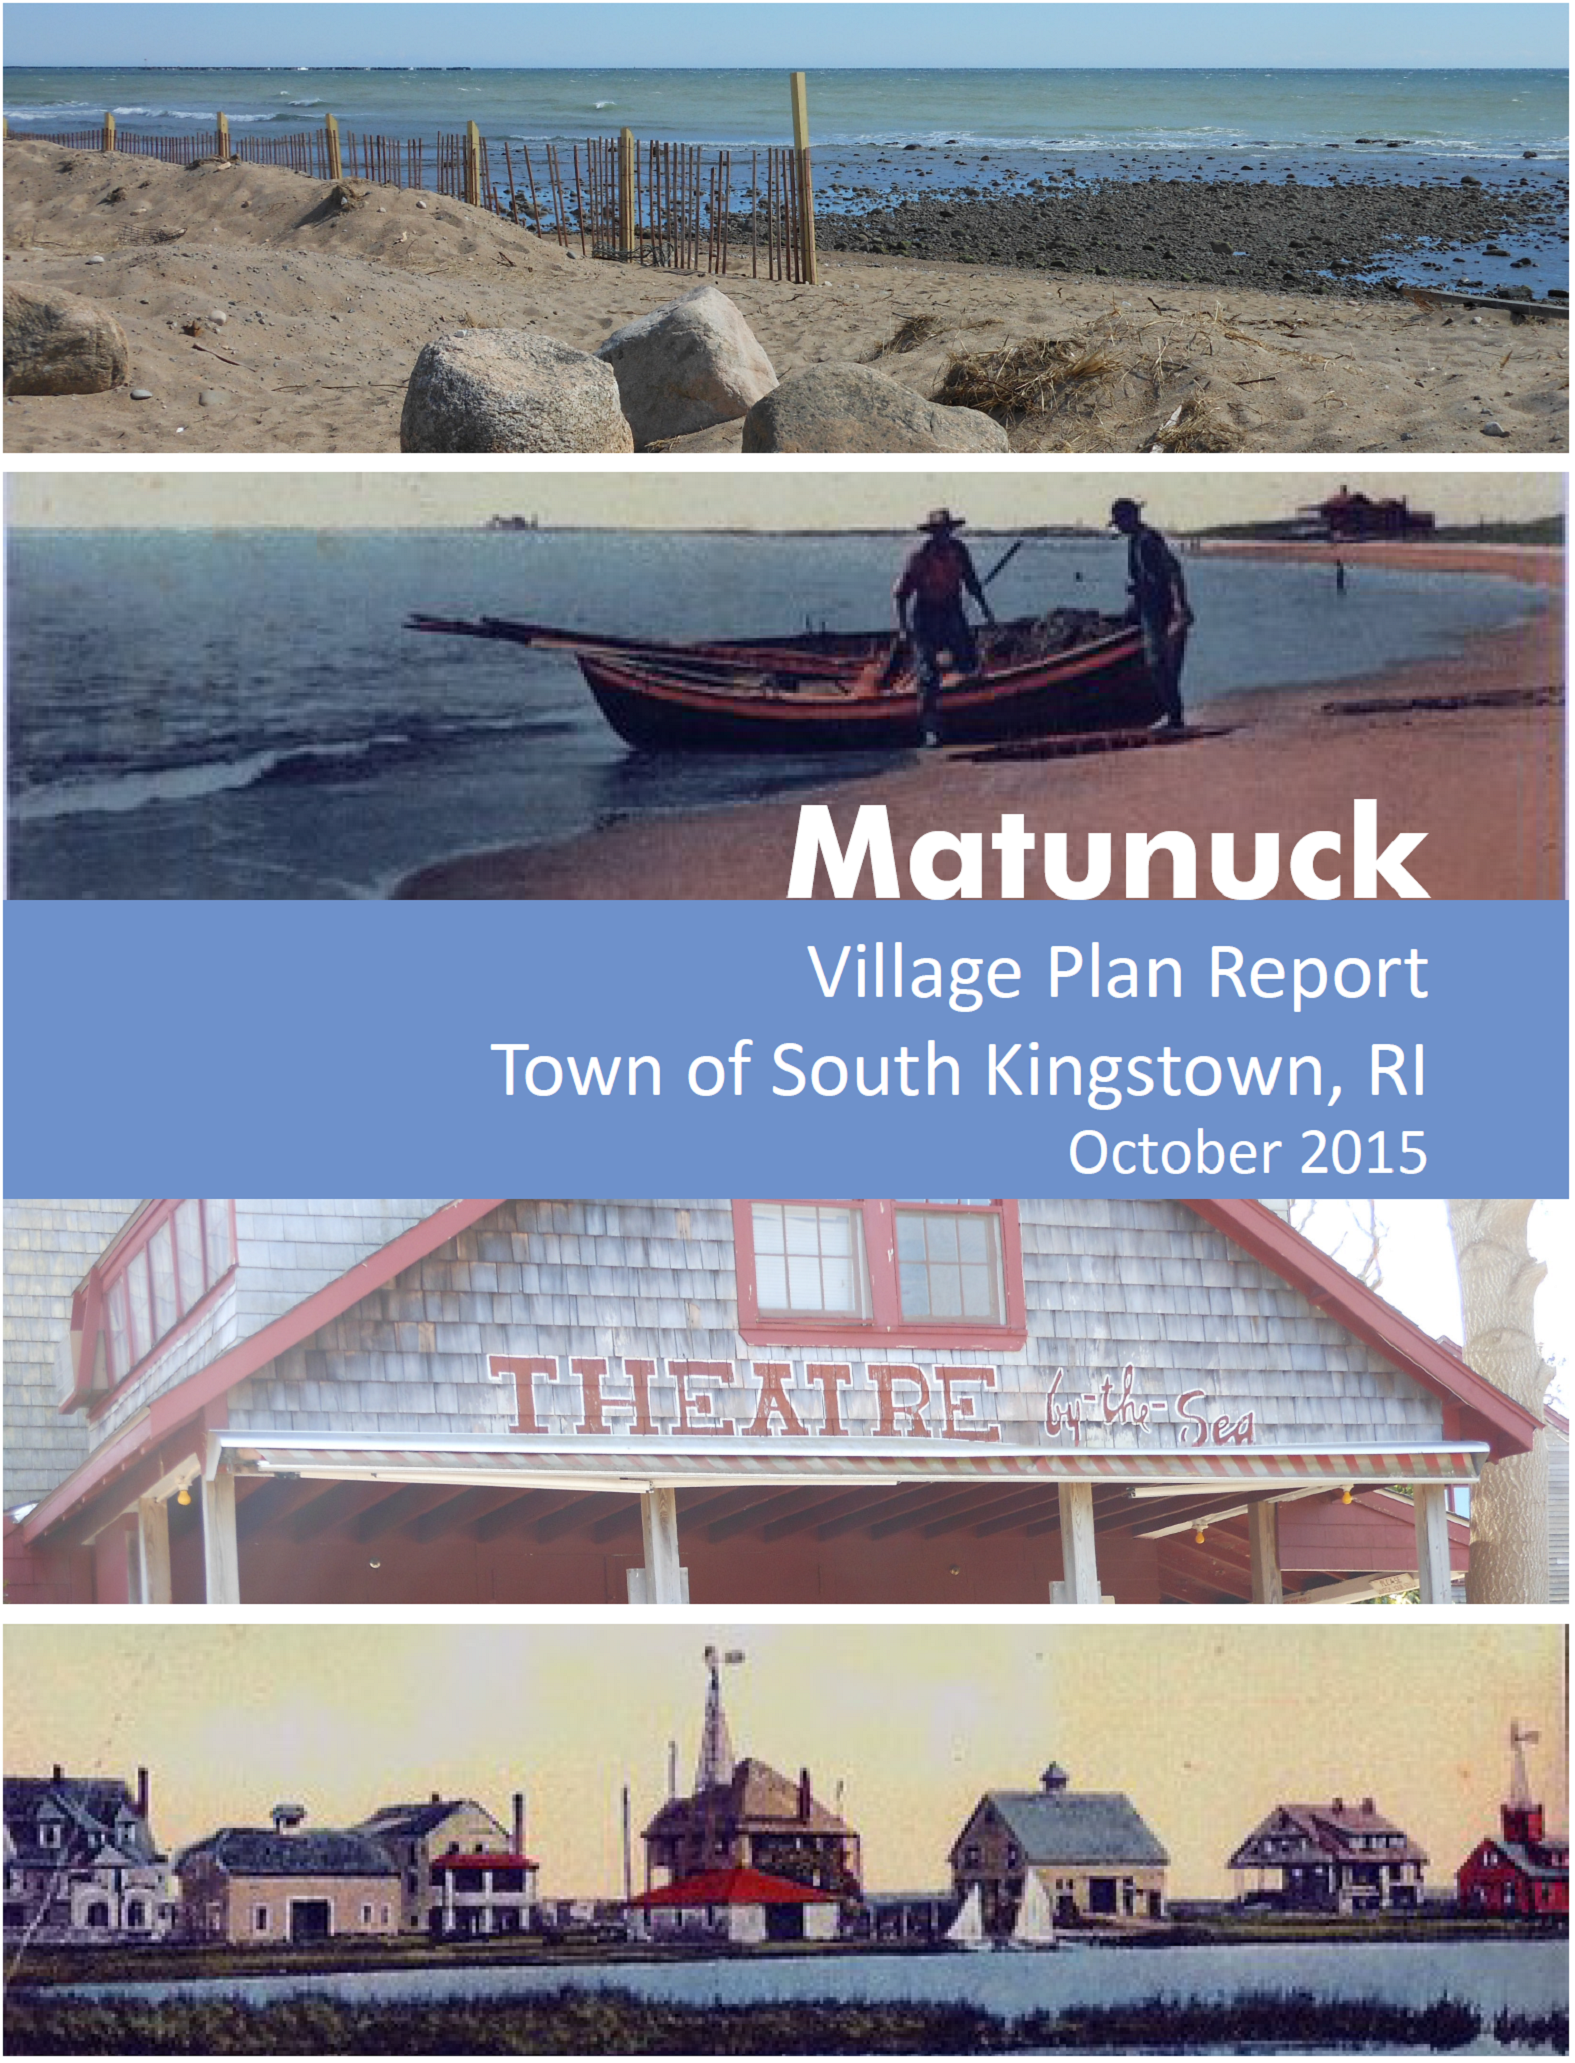 The  Matunuck Village Plan Report  is one of three reports to date seeking to maintain and improve the Town's village centers.